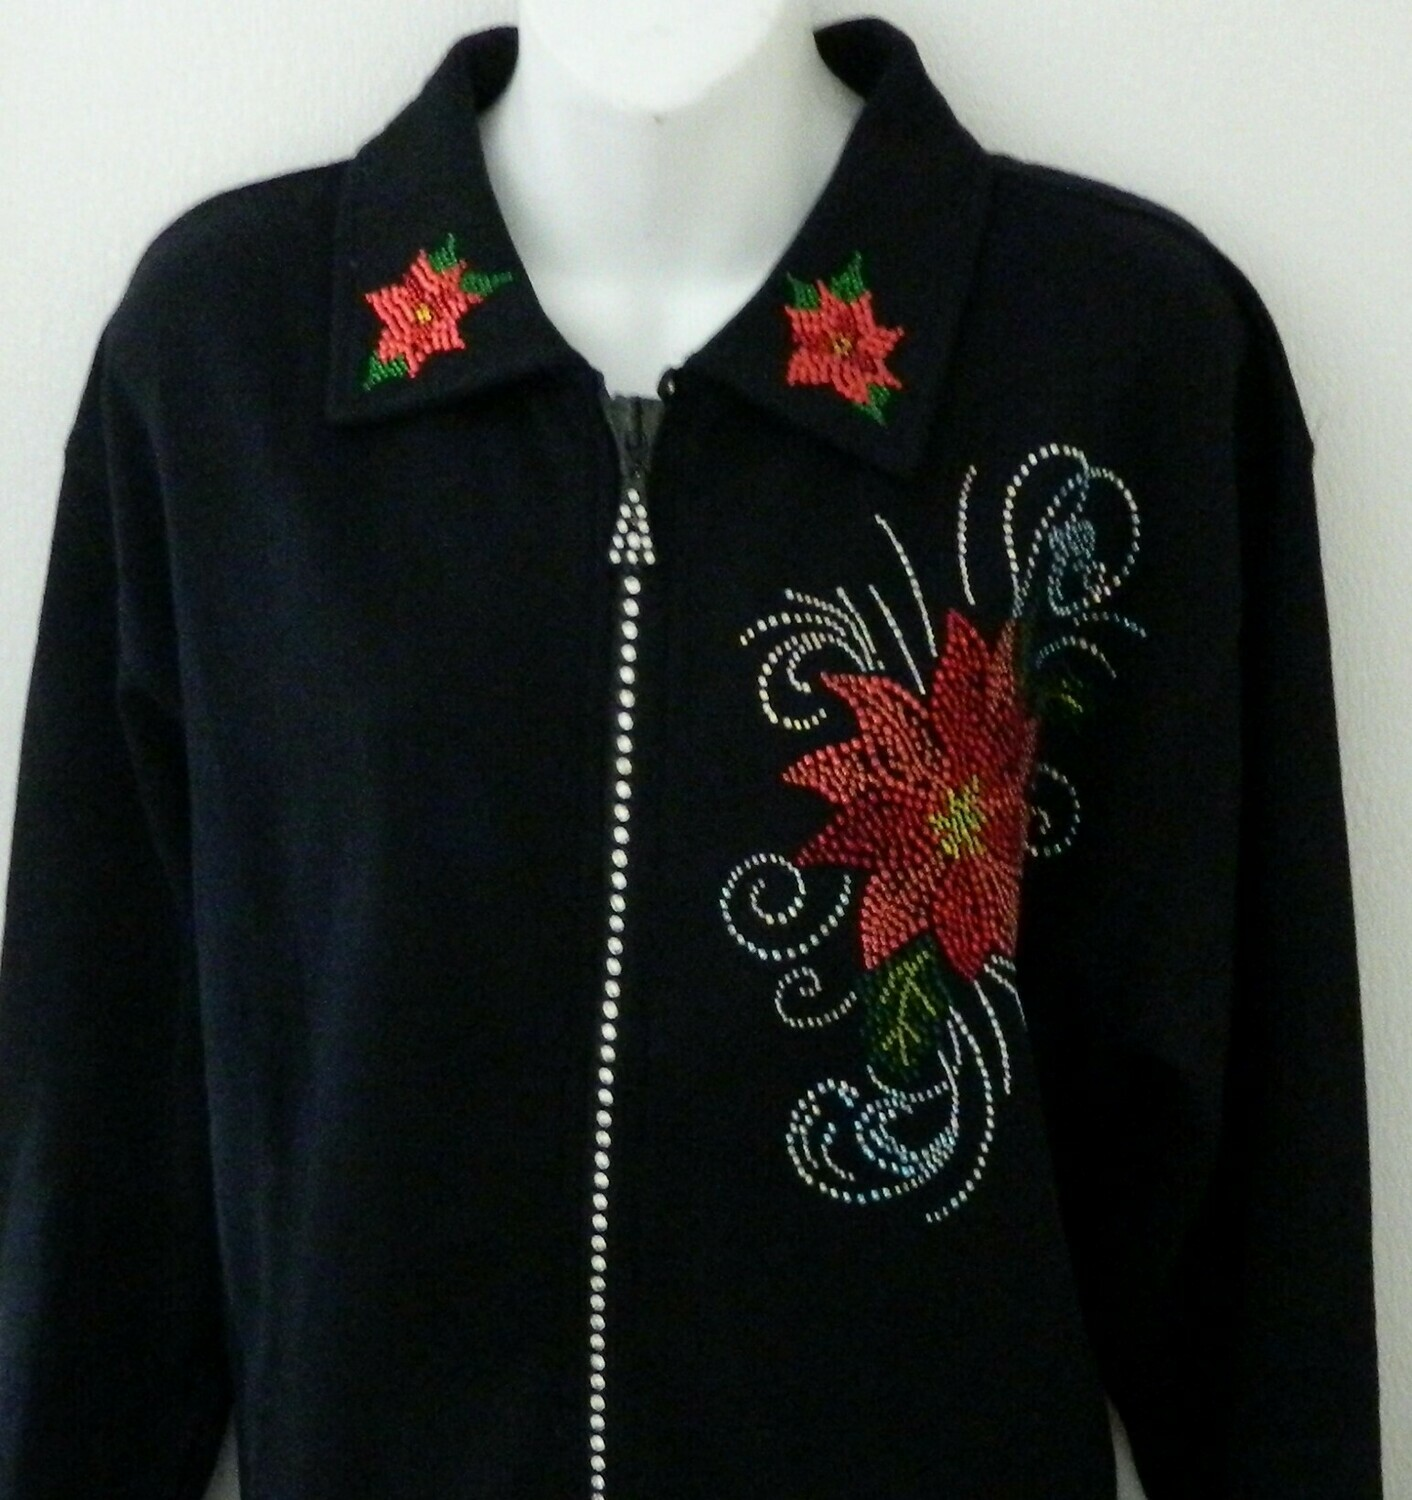 CHRISTMAS DESIGN Rhinestone Crystal Zippered Cardigans